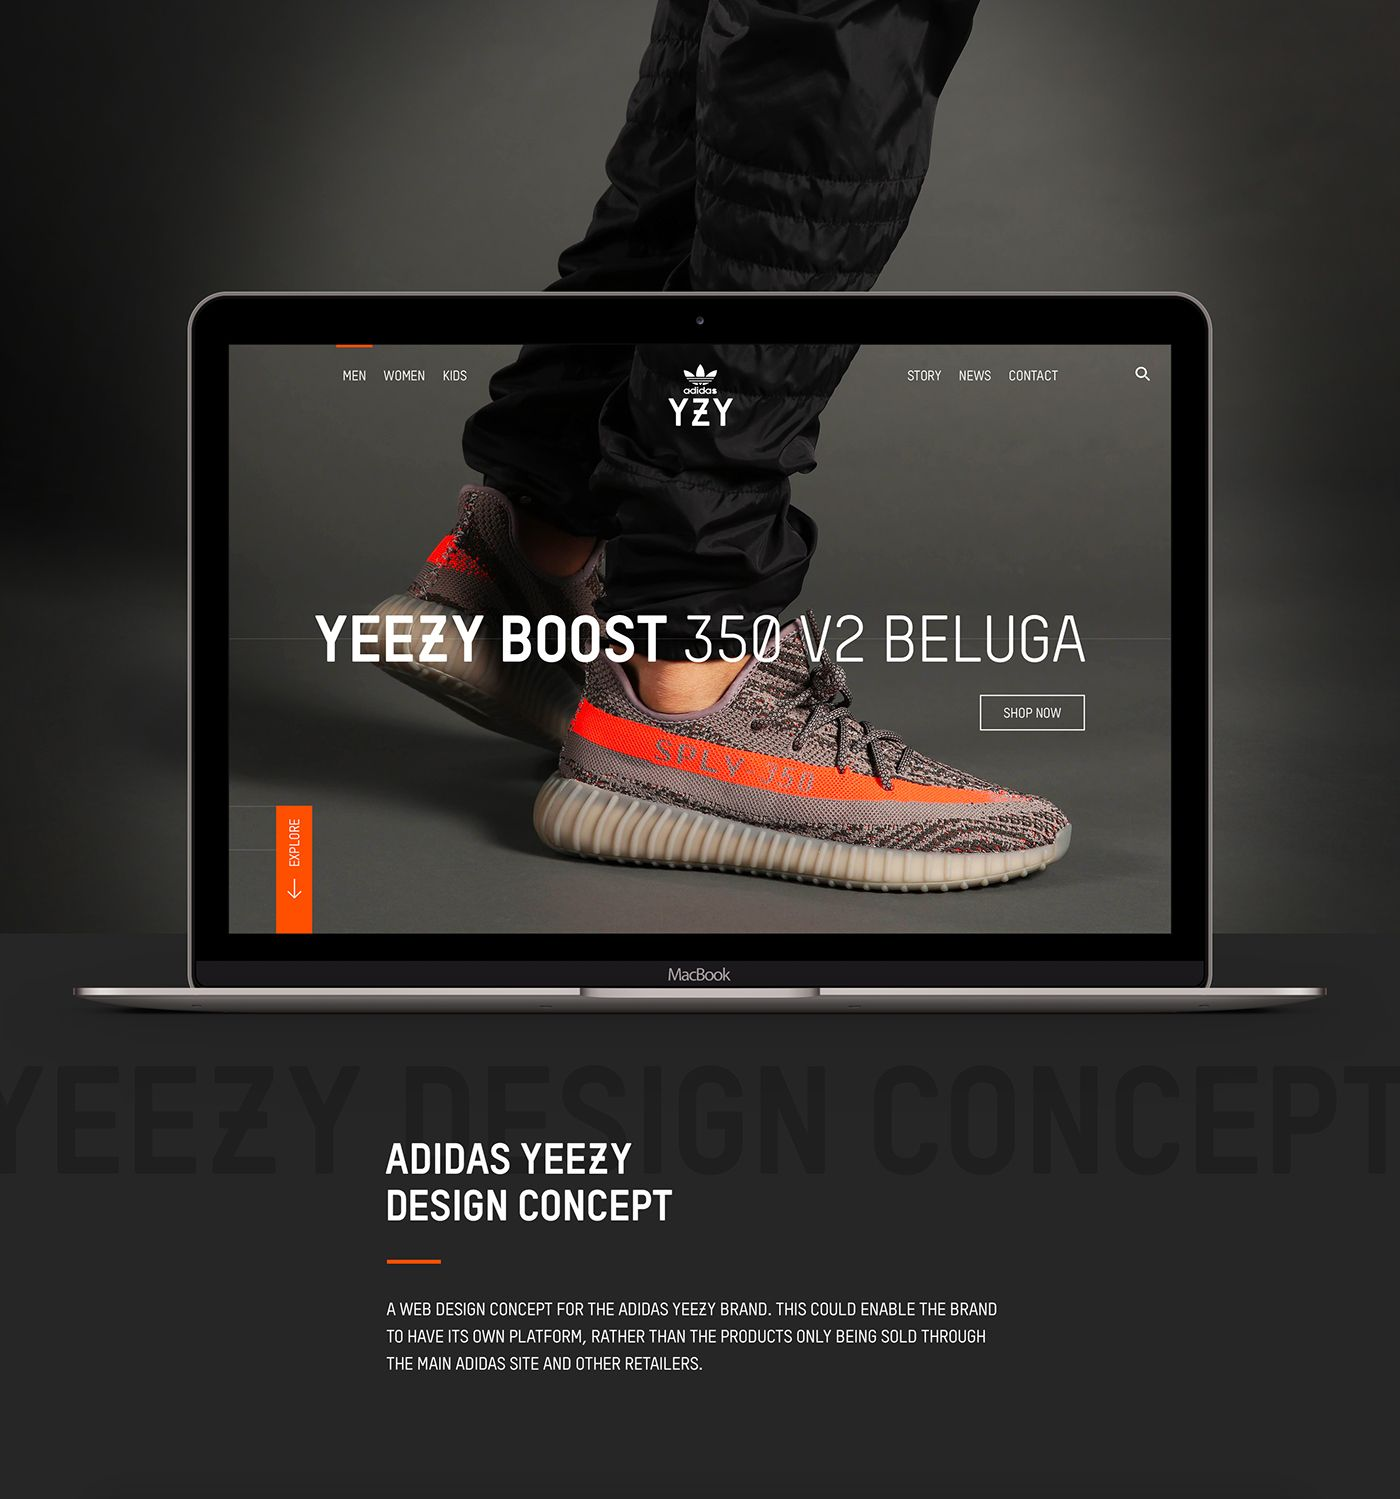 finest selection 16938 c8e45 A design concept for the website of the Adidas Yeezy brand ...